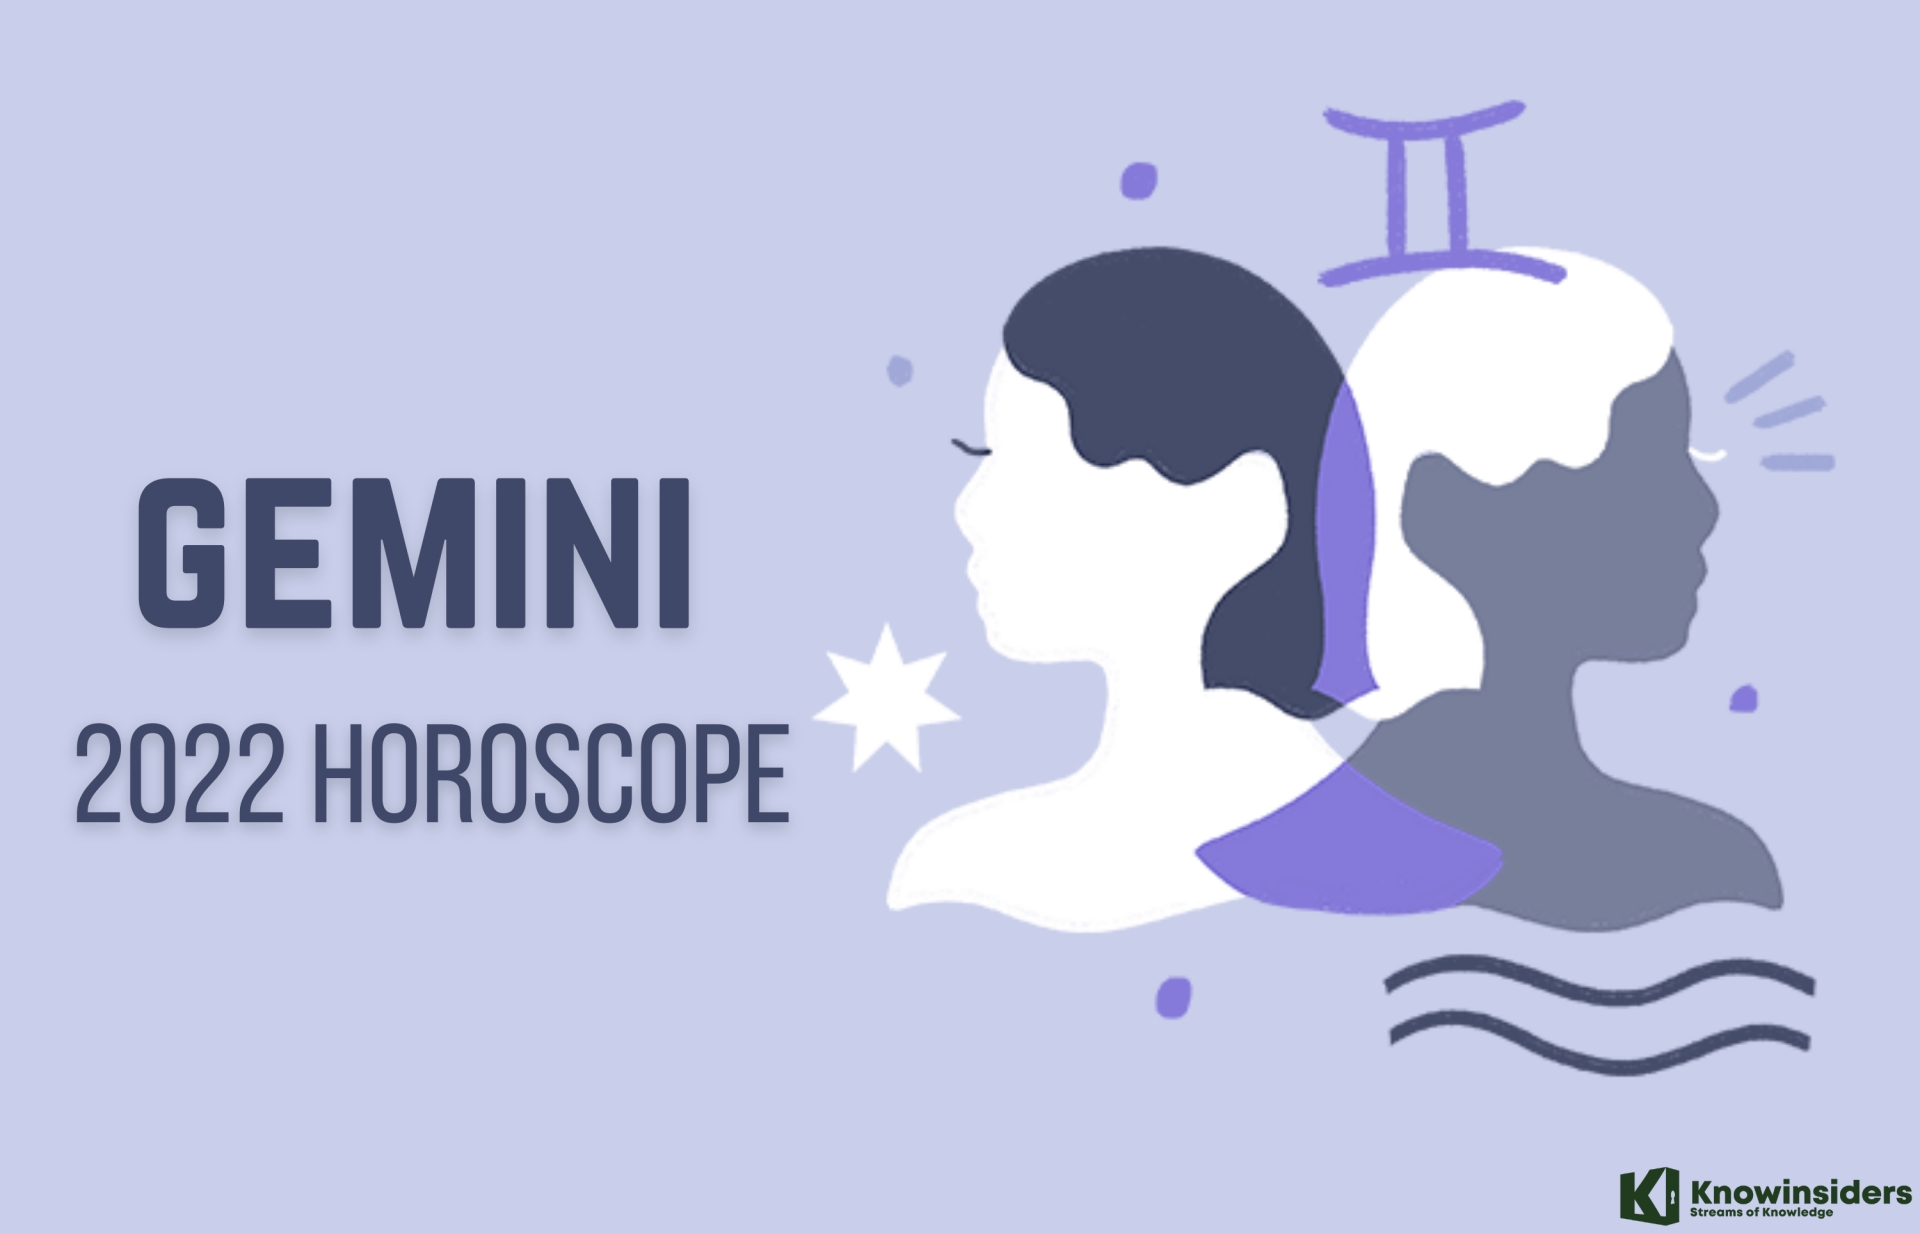 GEMINI Yearly Horoscope 2022 - Astrological Prediction for Love, Career, Money and Health